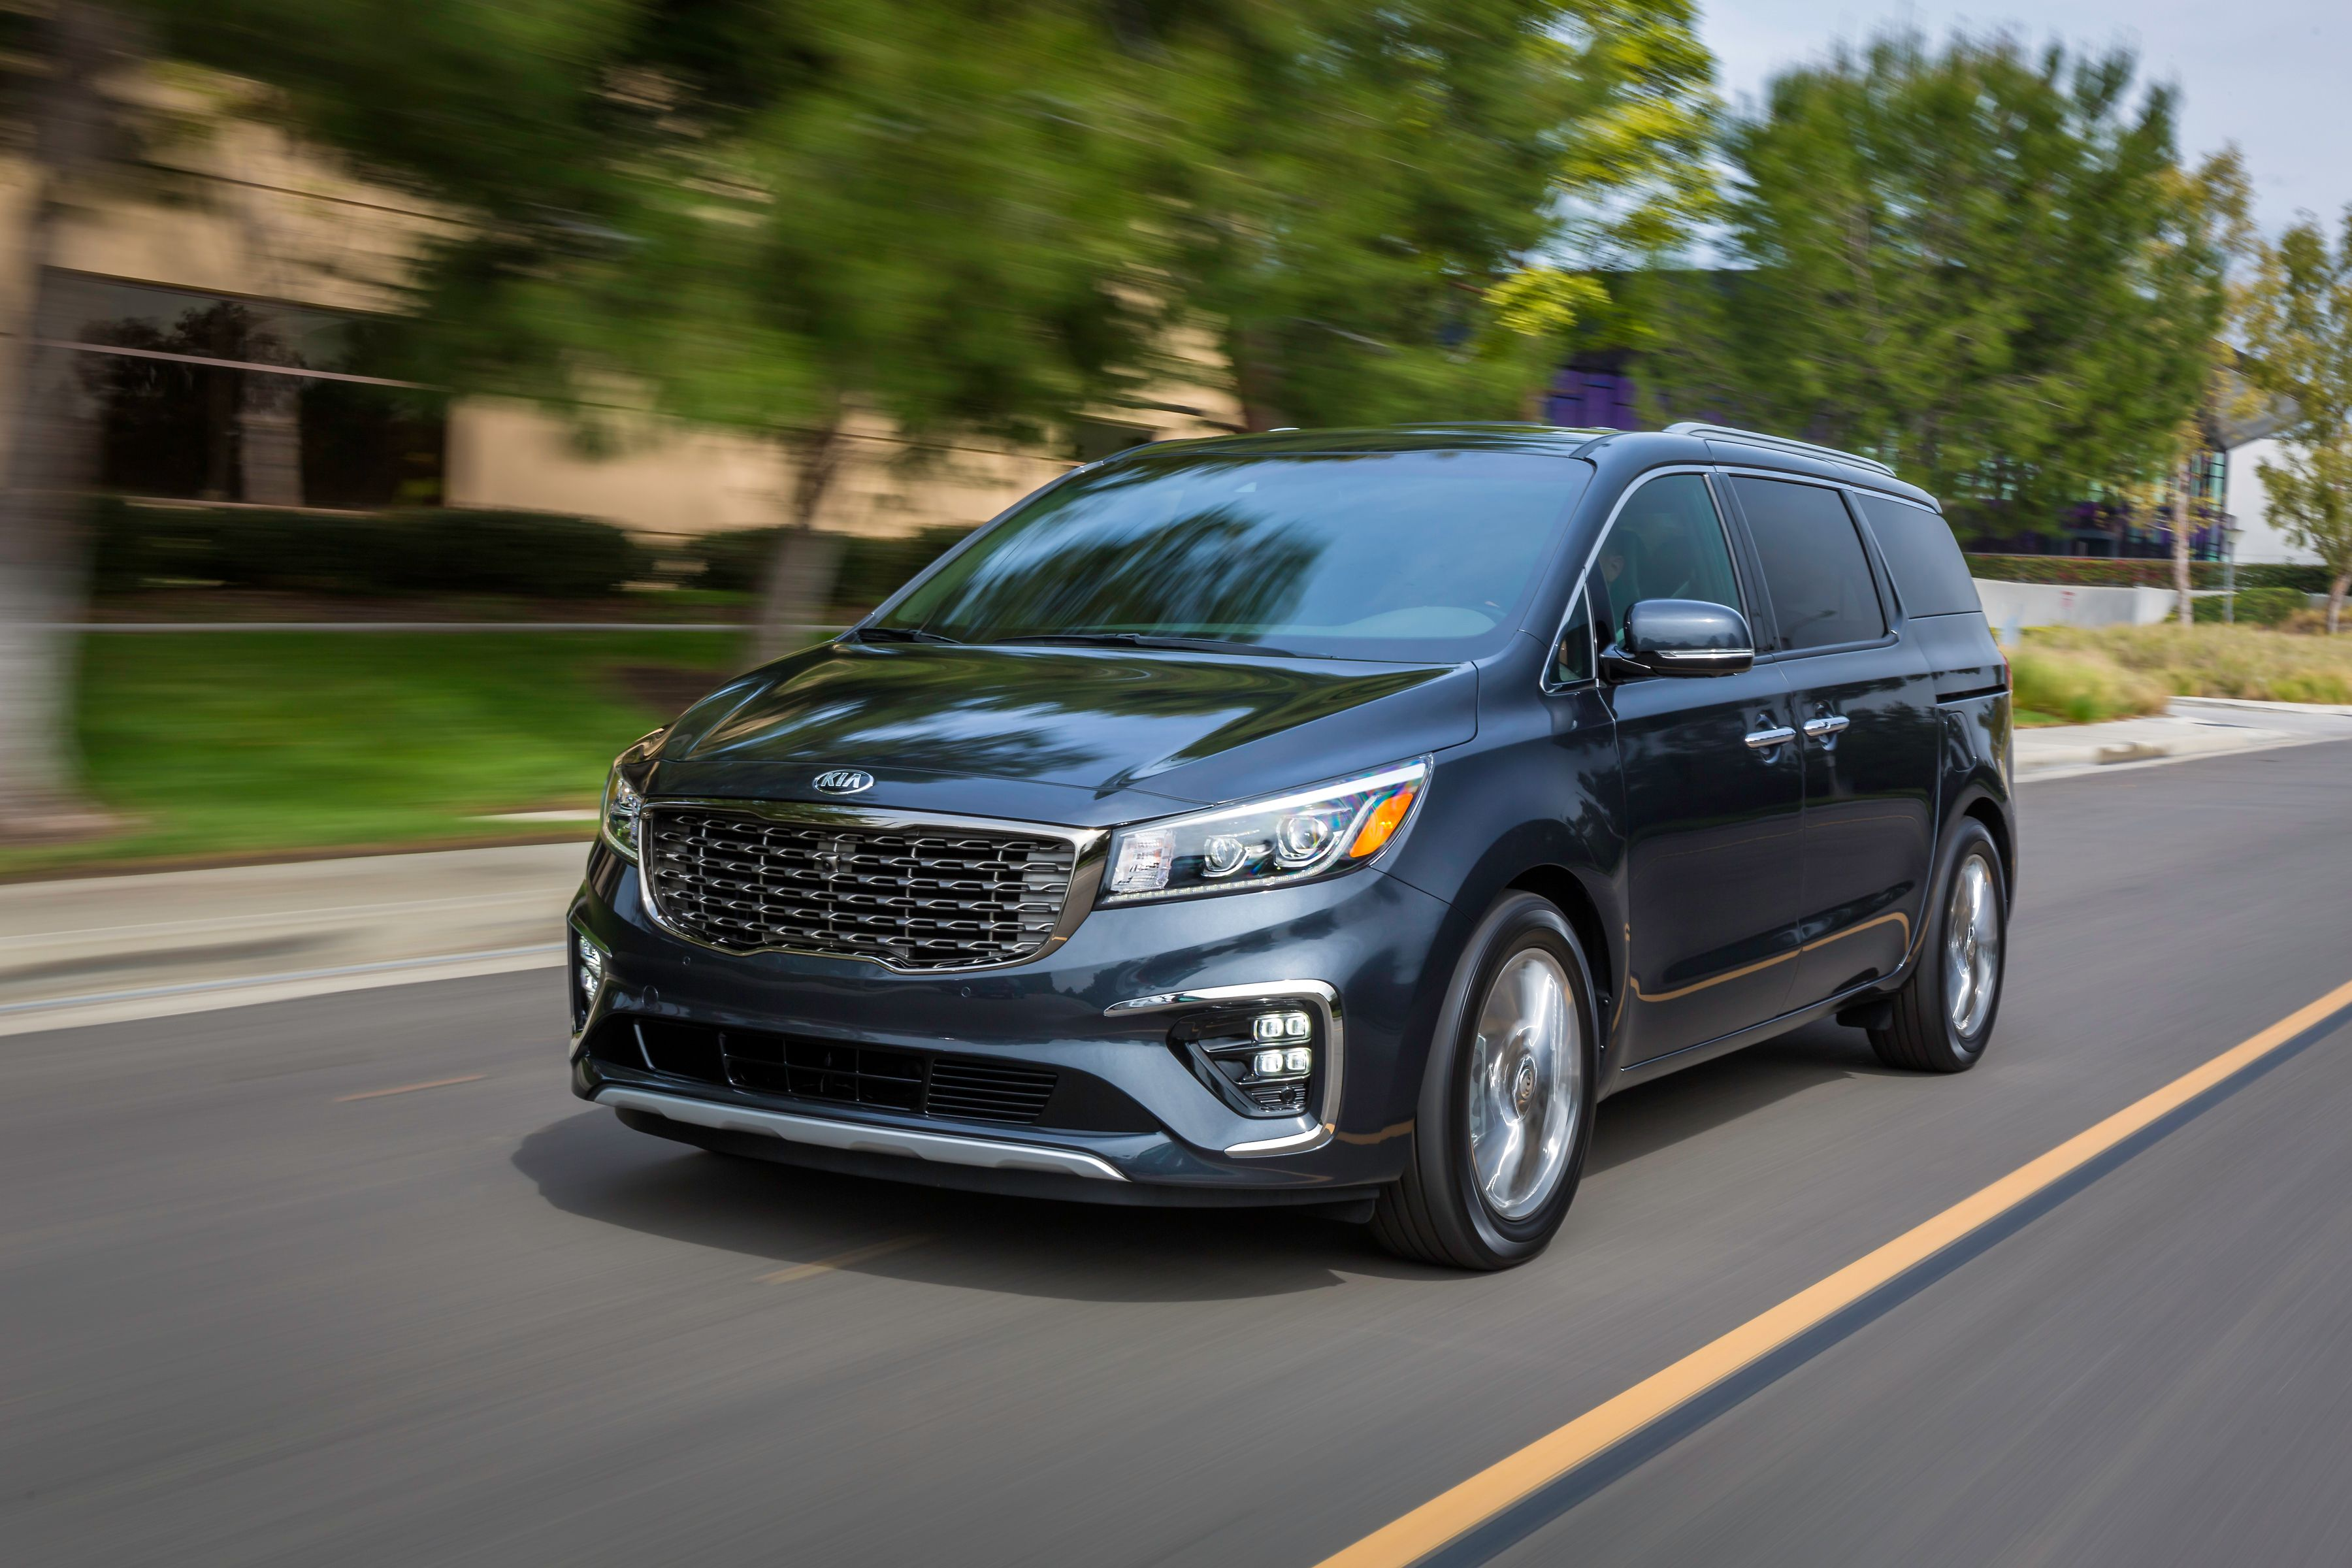 New Sedona Will Debut at the New York Auto Show in April ...